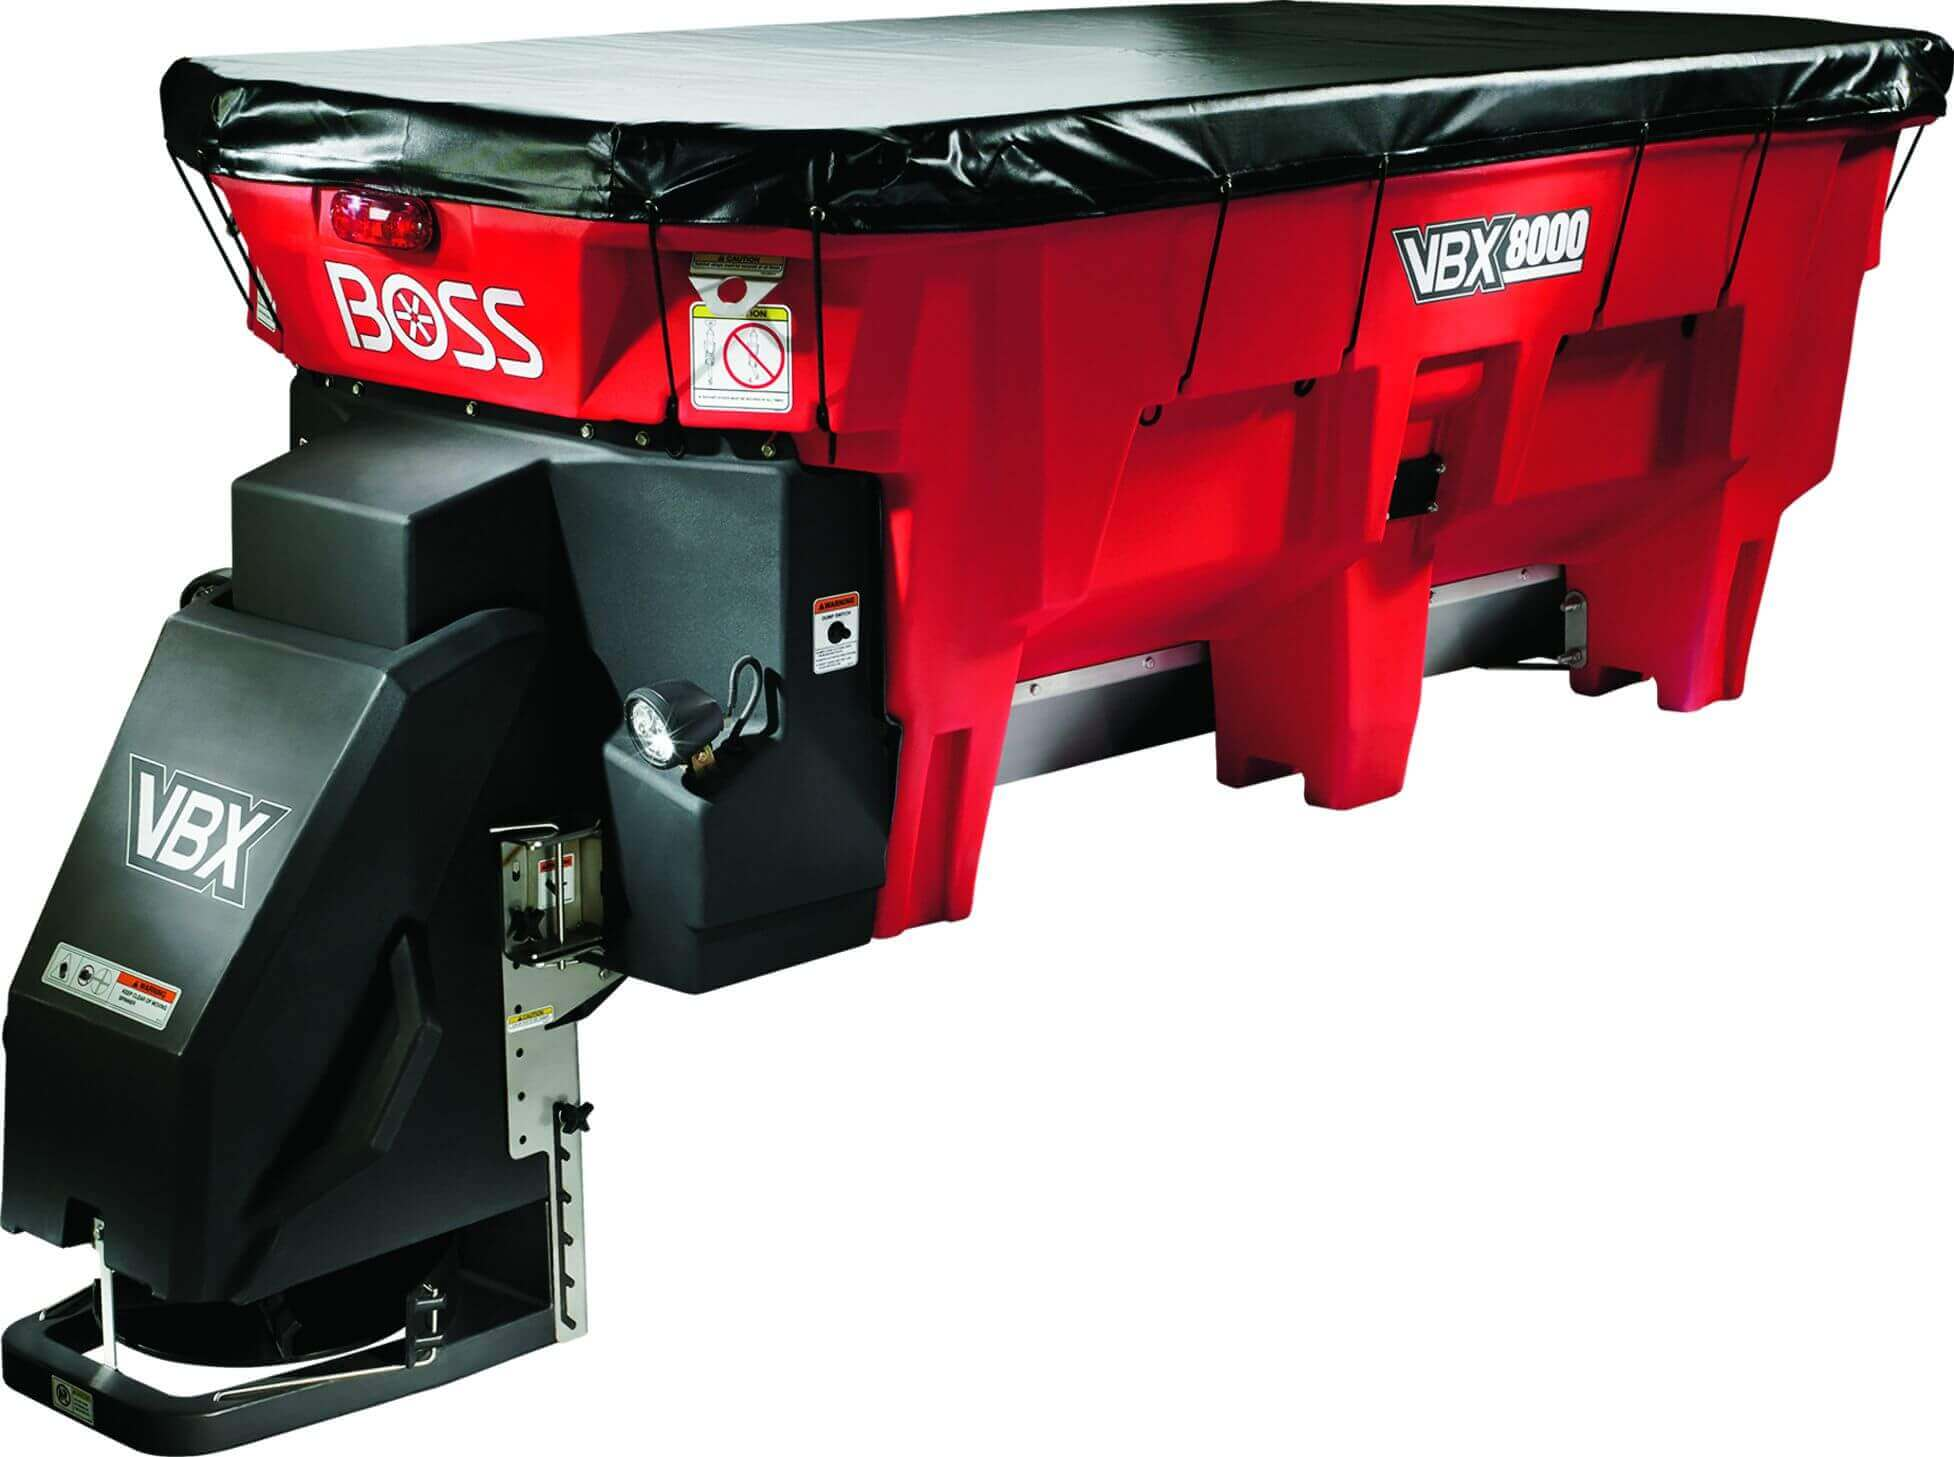 Western Vbox Spreader Wiring Diagram Boss Sander Salt Spreaders Shop Iteparts Com Vbx3000 V Box At Snow Plow Schematic